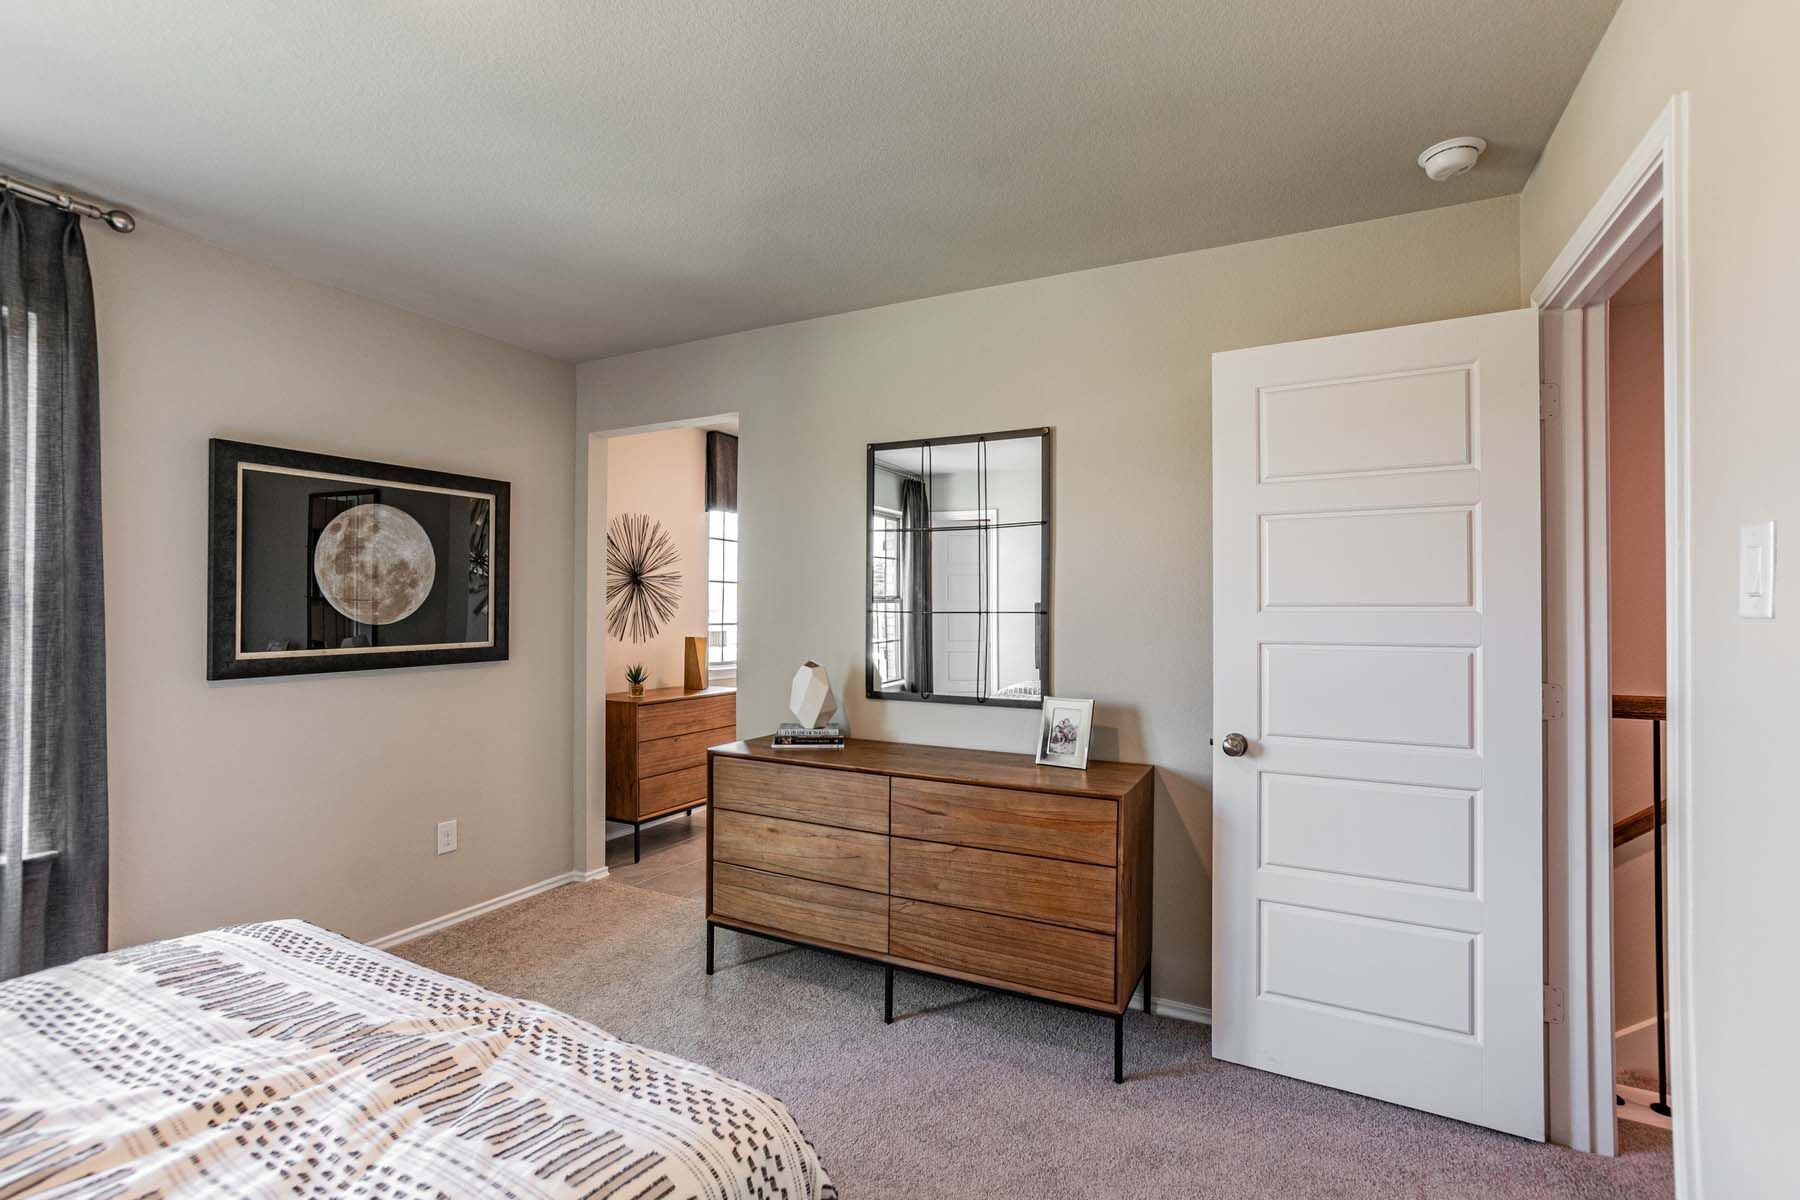 Bedroom featured in the Dogwood By M/I Homes in Houston, TX